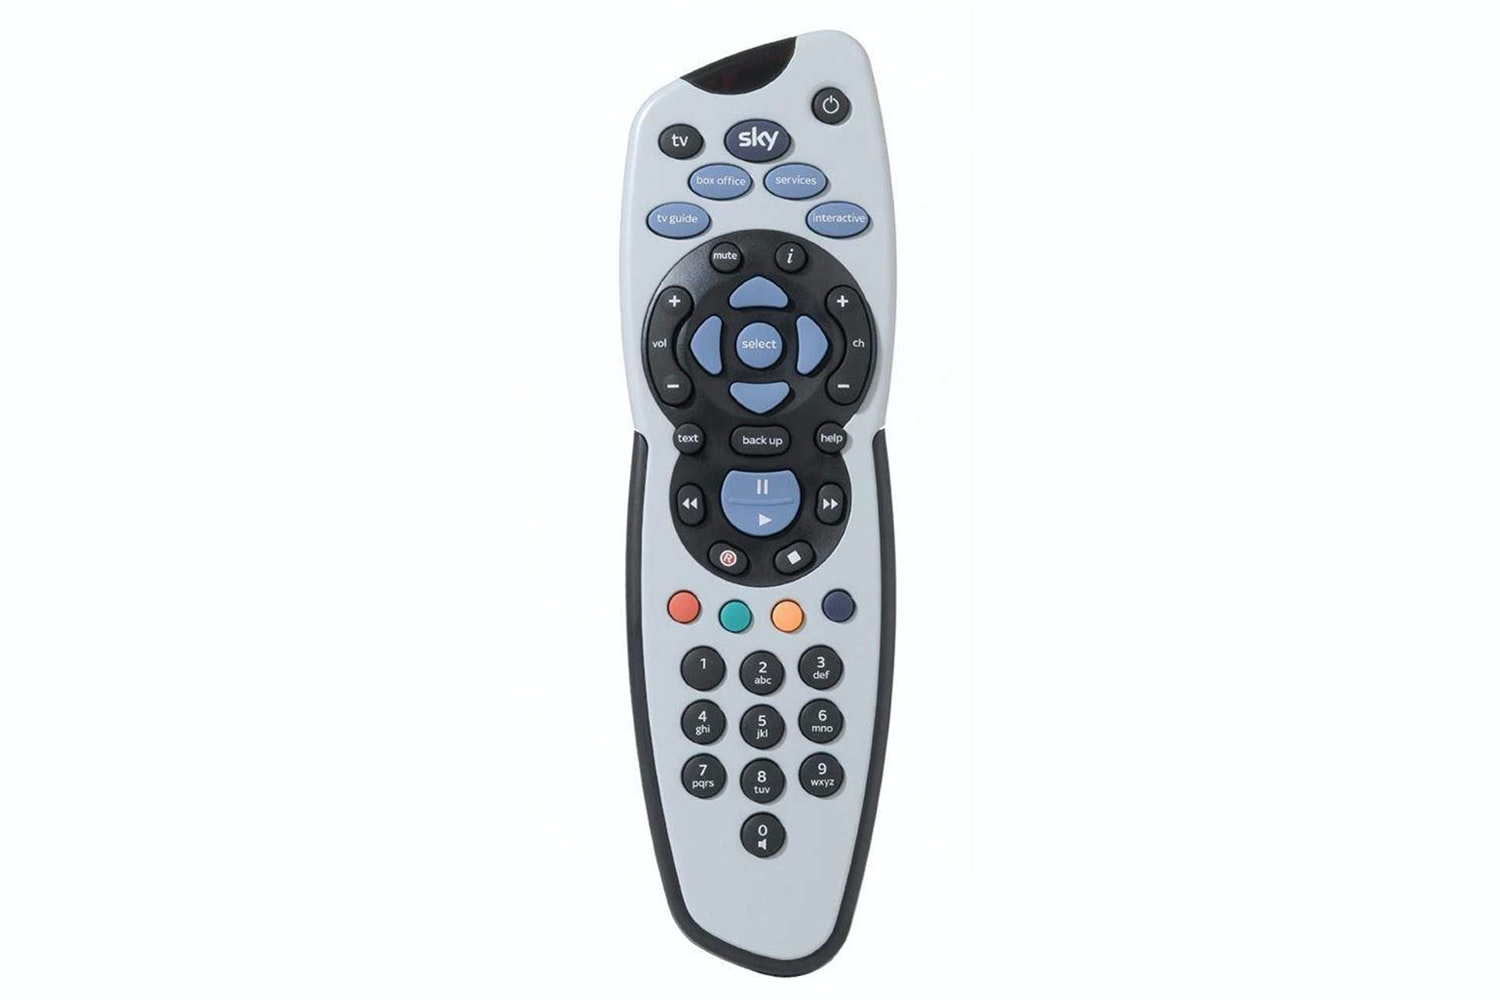 One For All Sky Plus Remote Control | SKY111